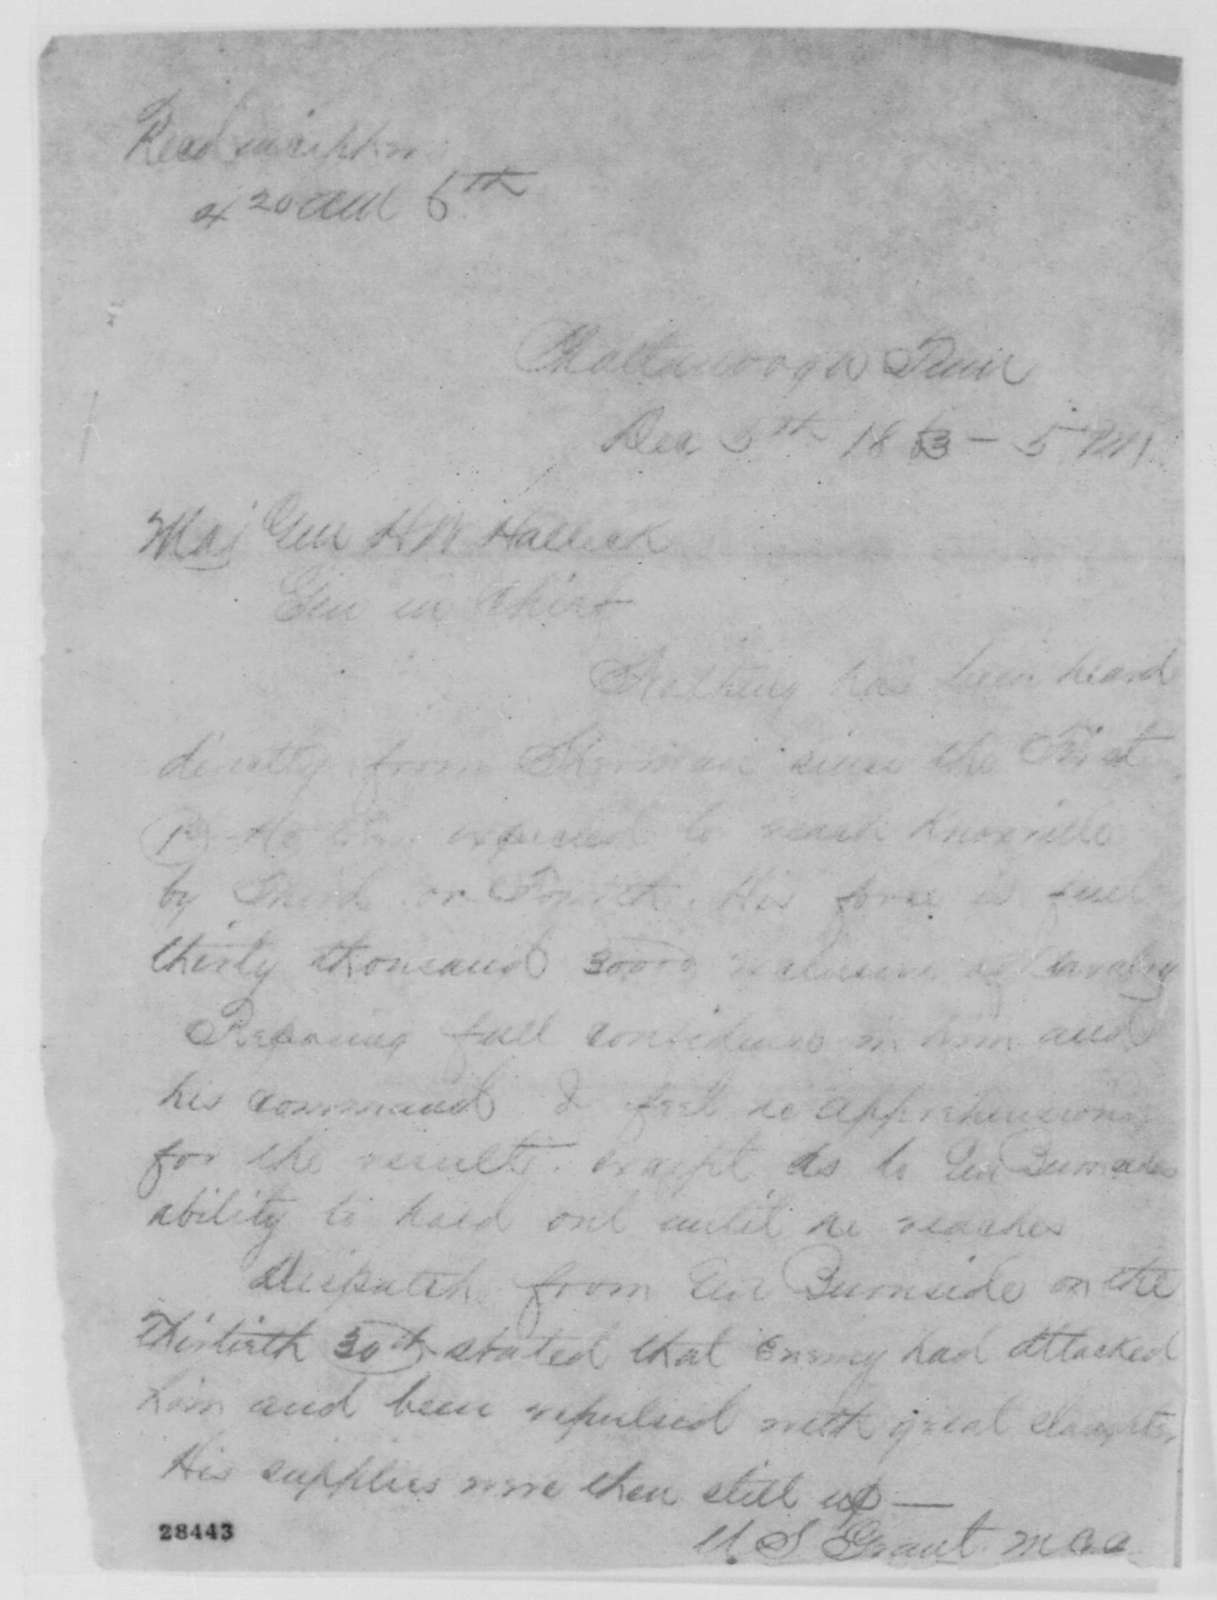 Ulysses S. Grant to Henry W. Halleck, Sunday, December 06, 1863  (Telegram reporting military situation in Tennessee)